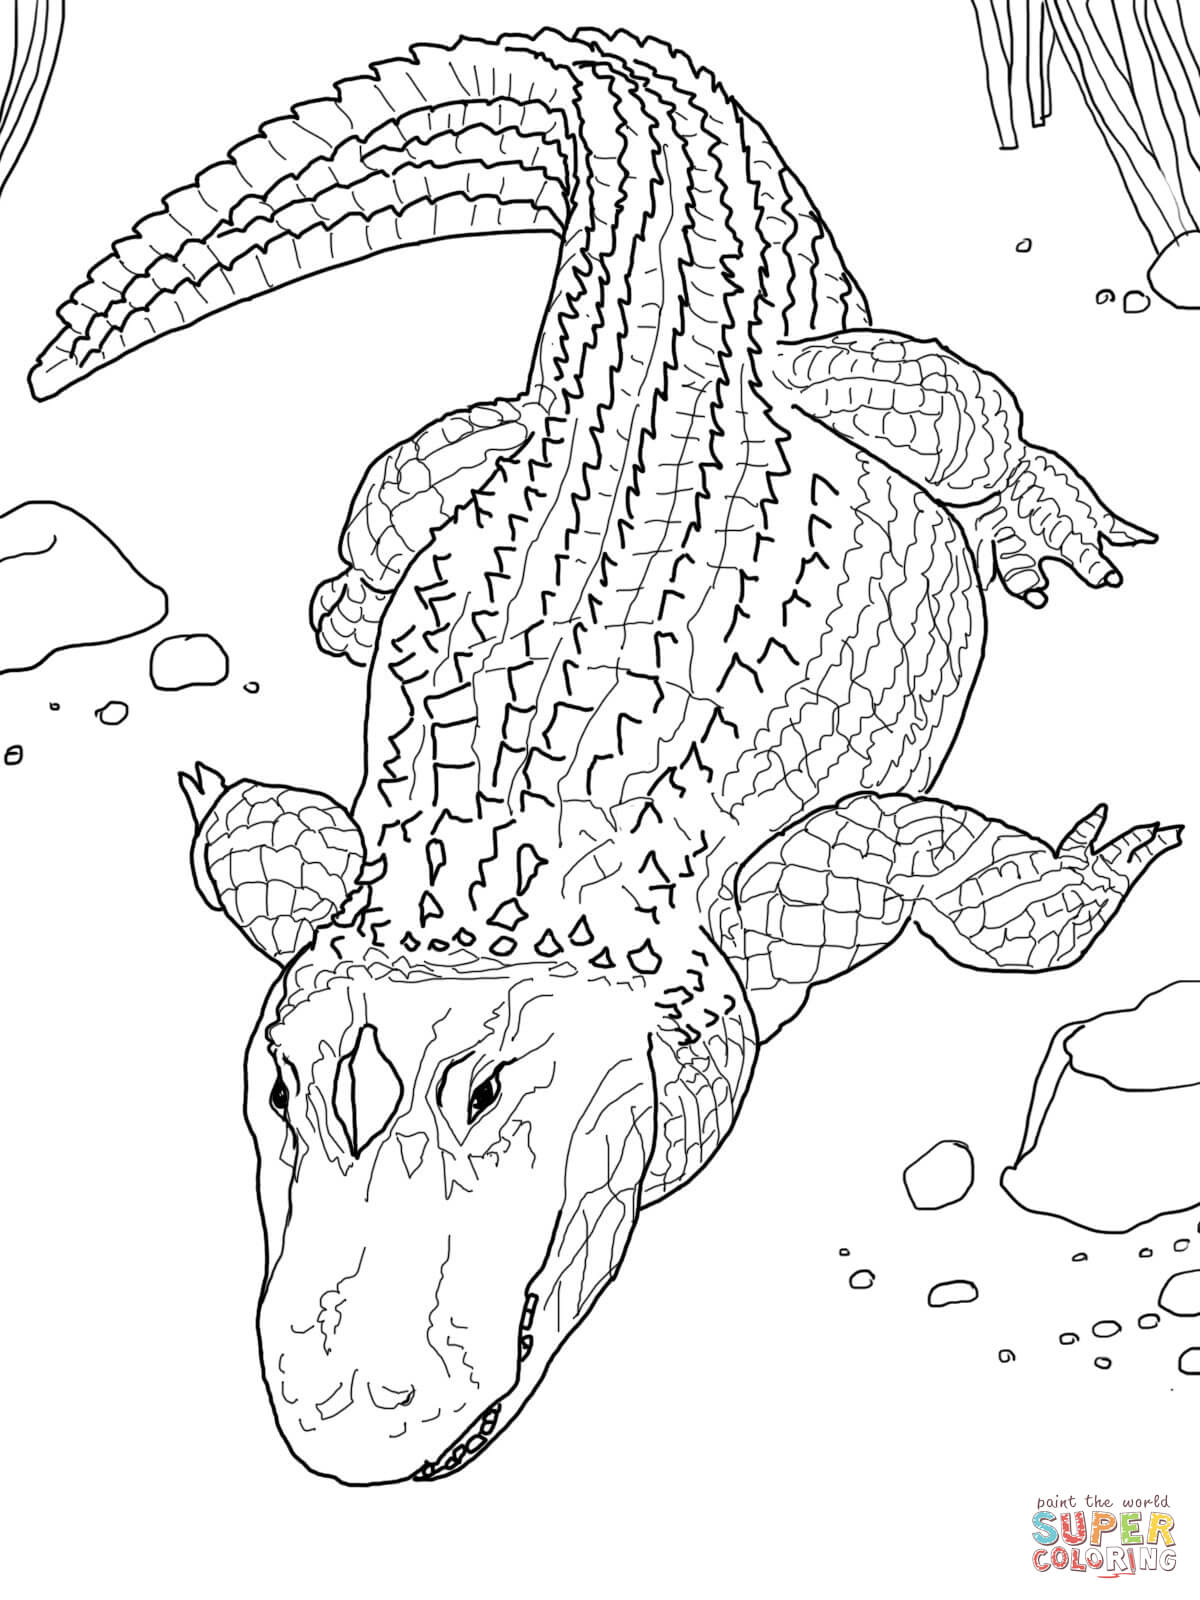 Coloring Page Alligator Alligators Coloring Pages Free Coloring Pages